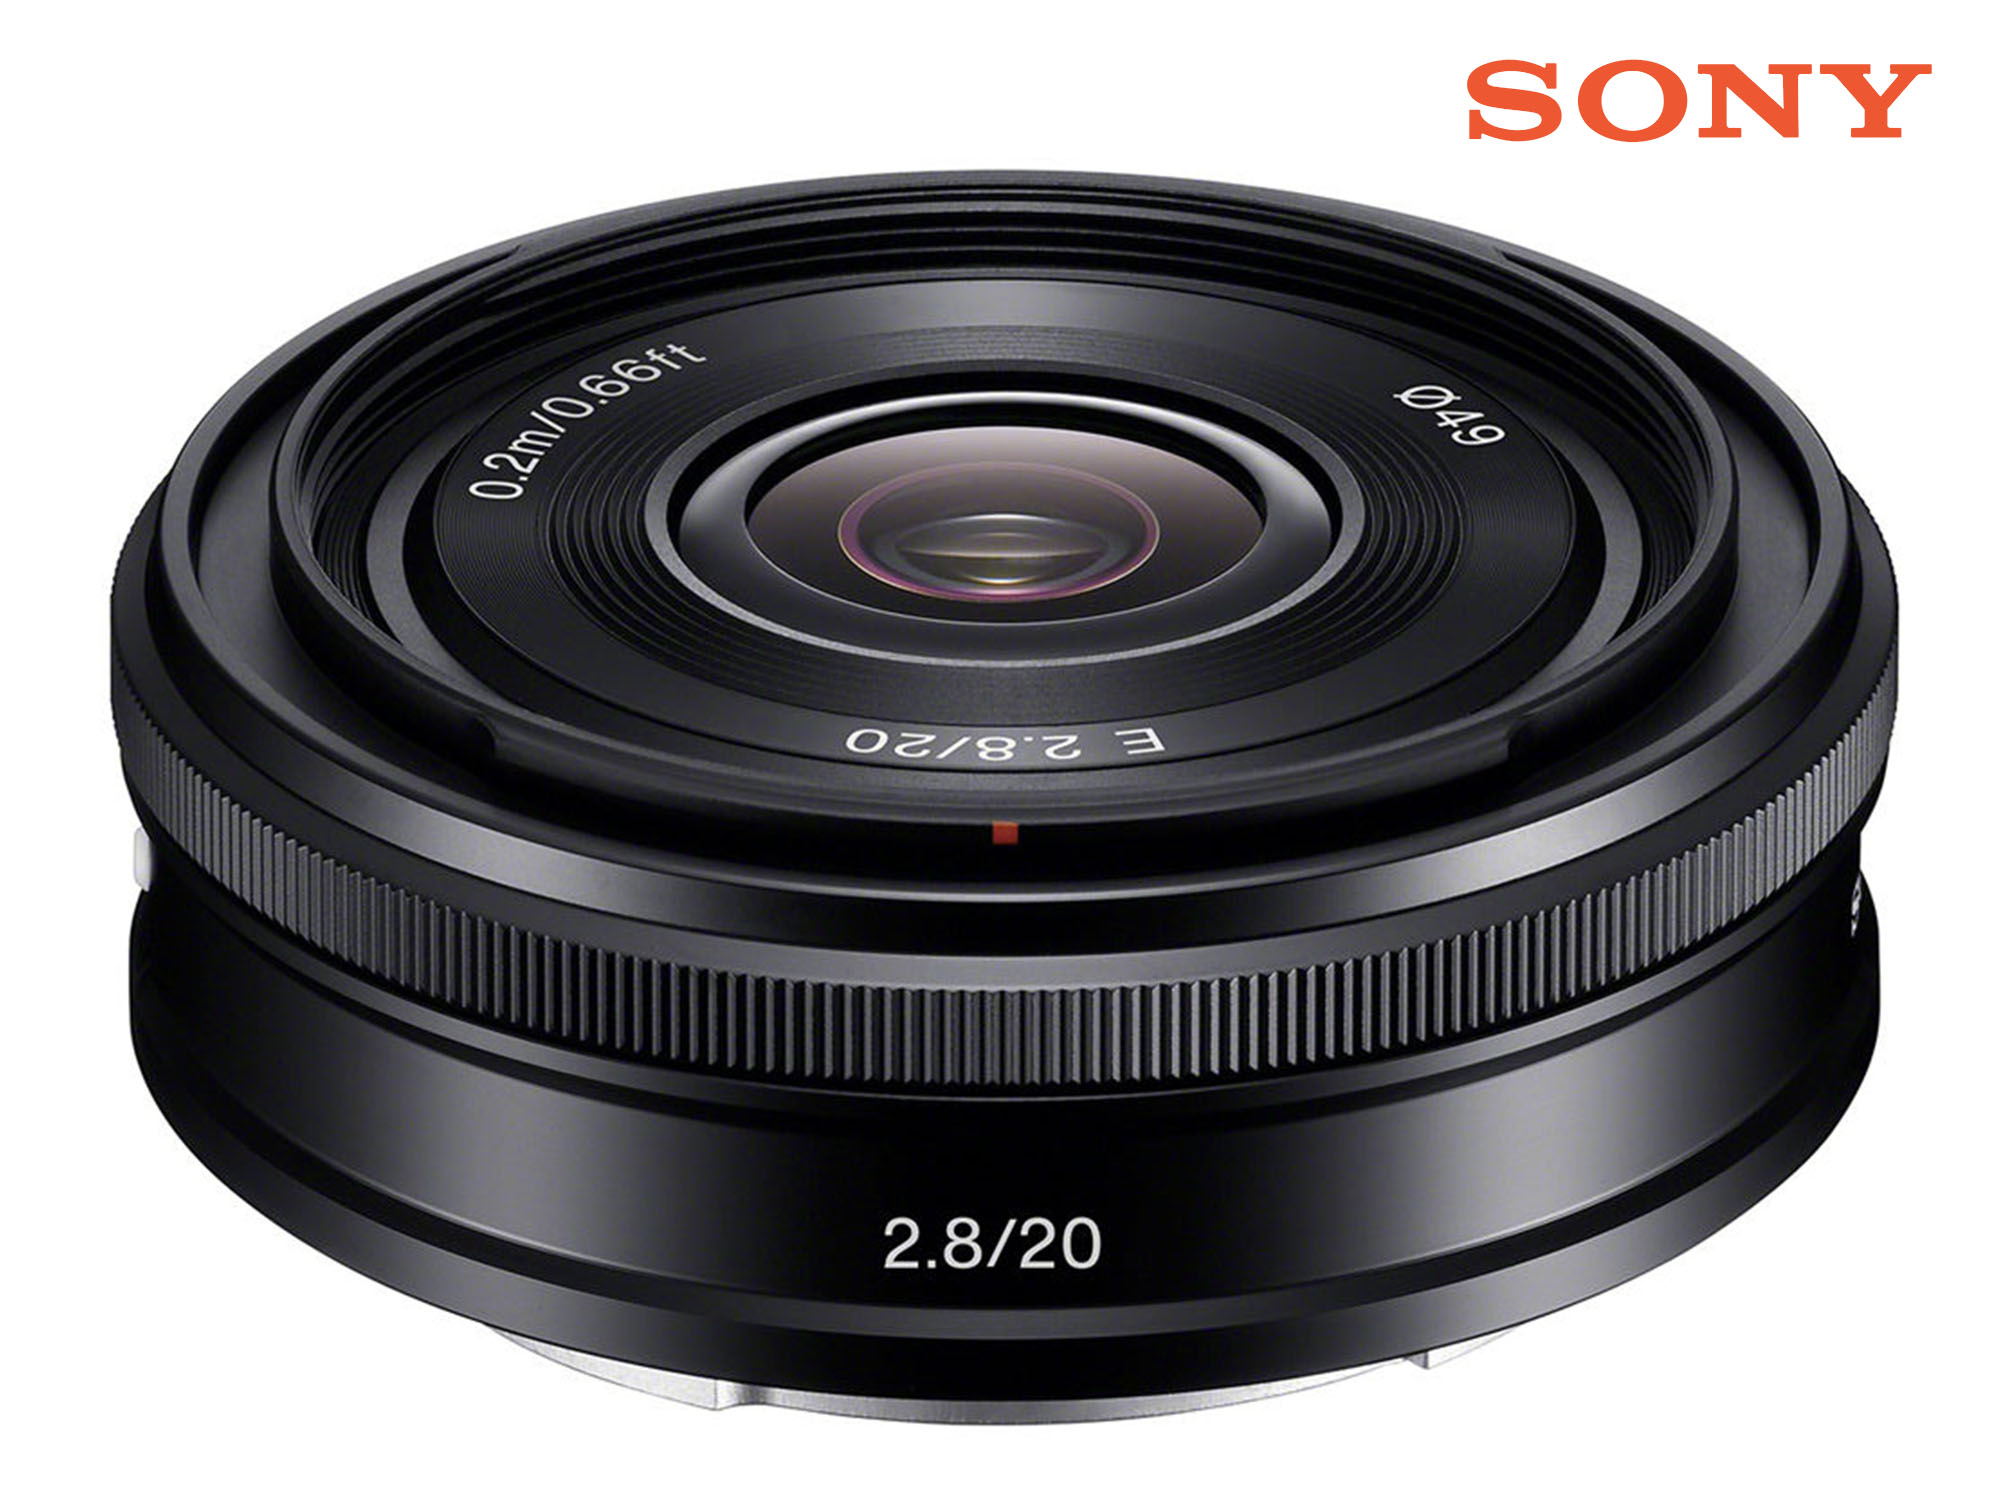 Sony Alpha E 20mm F2.8 E Mount Lens